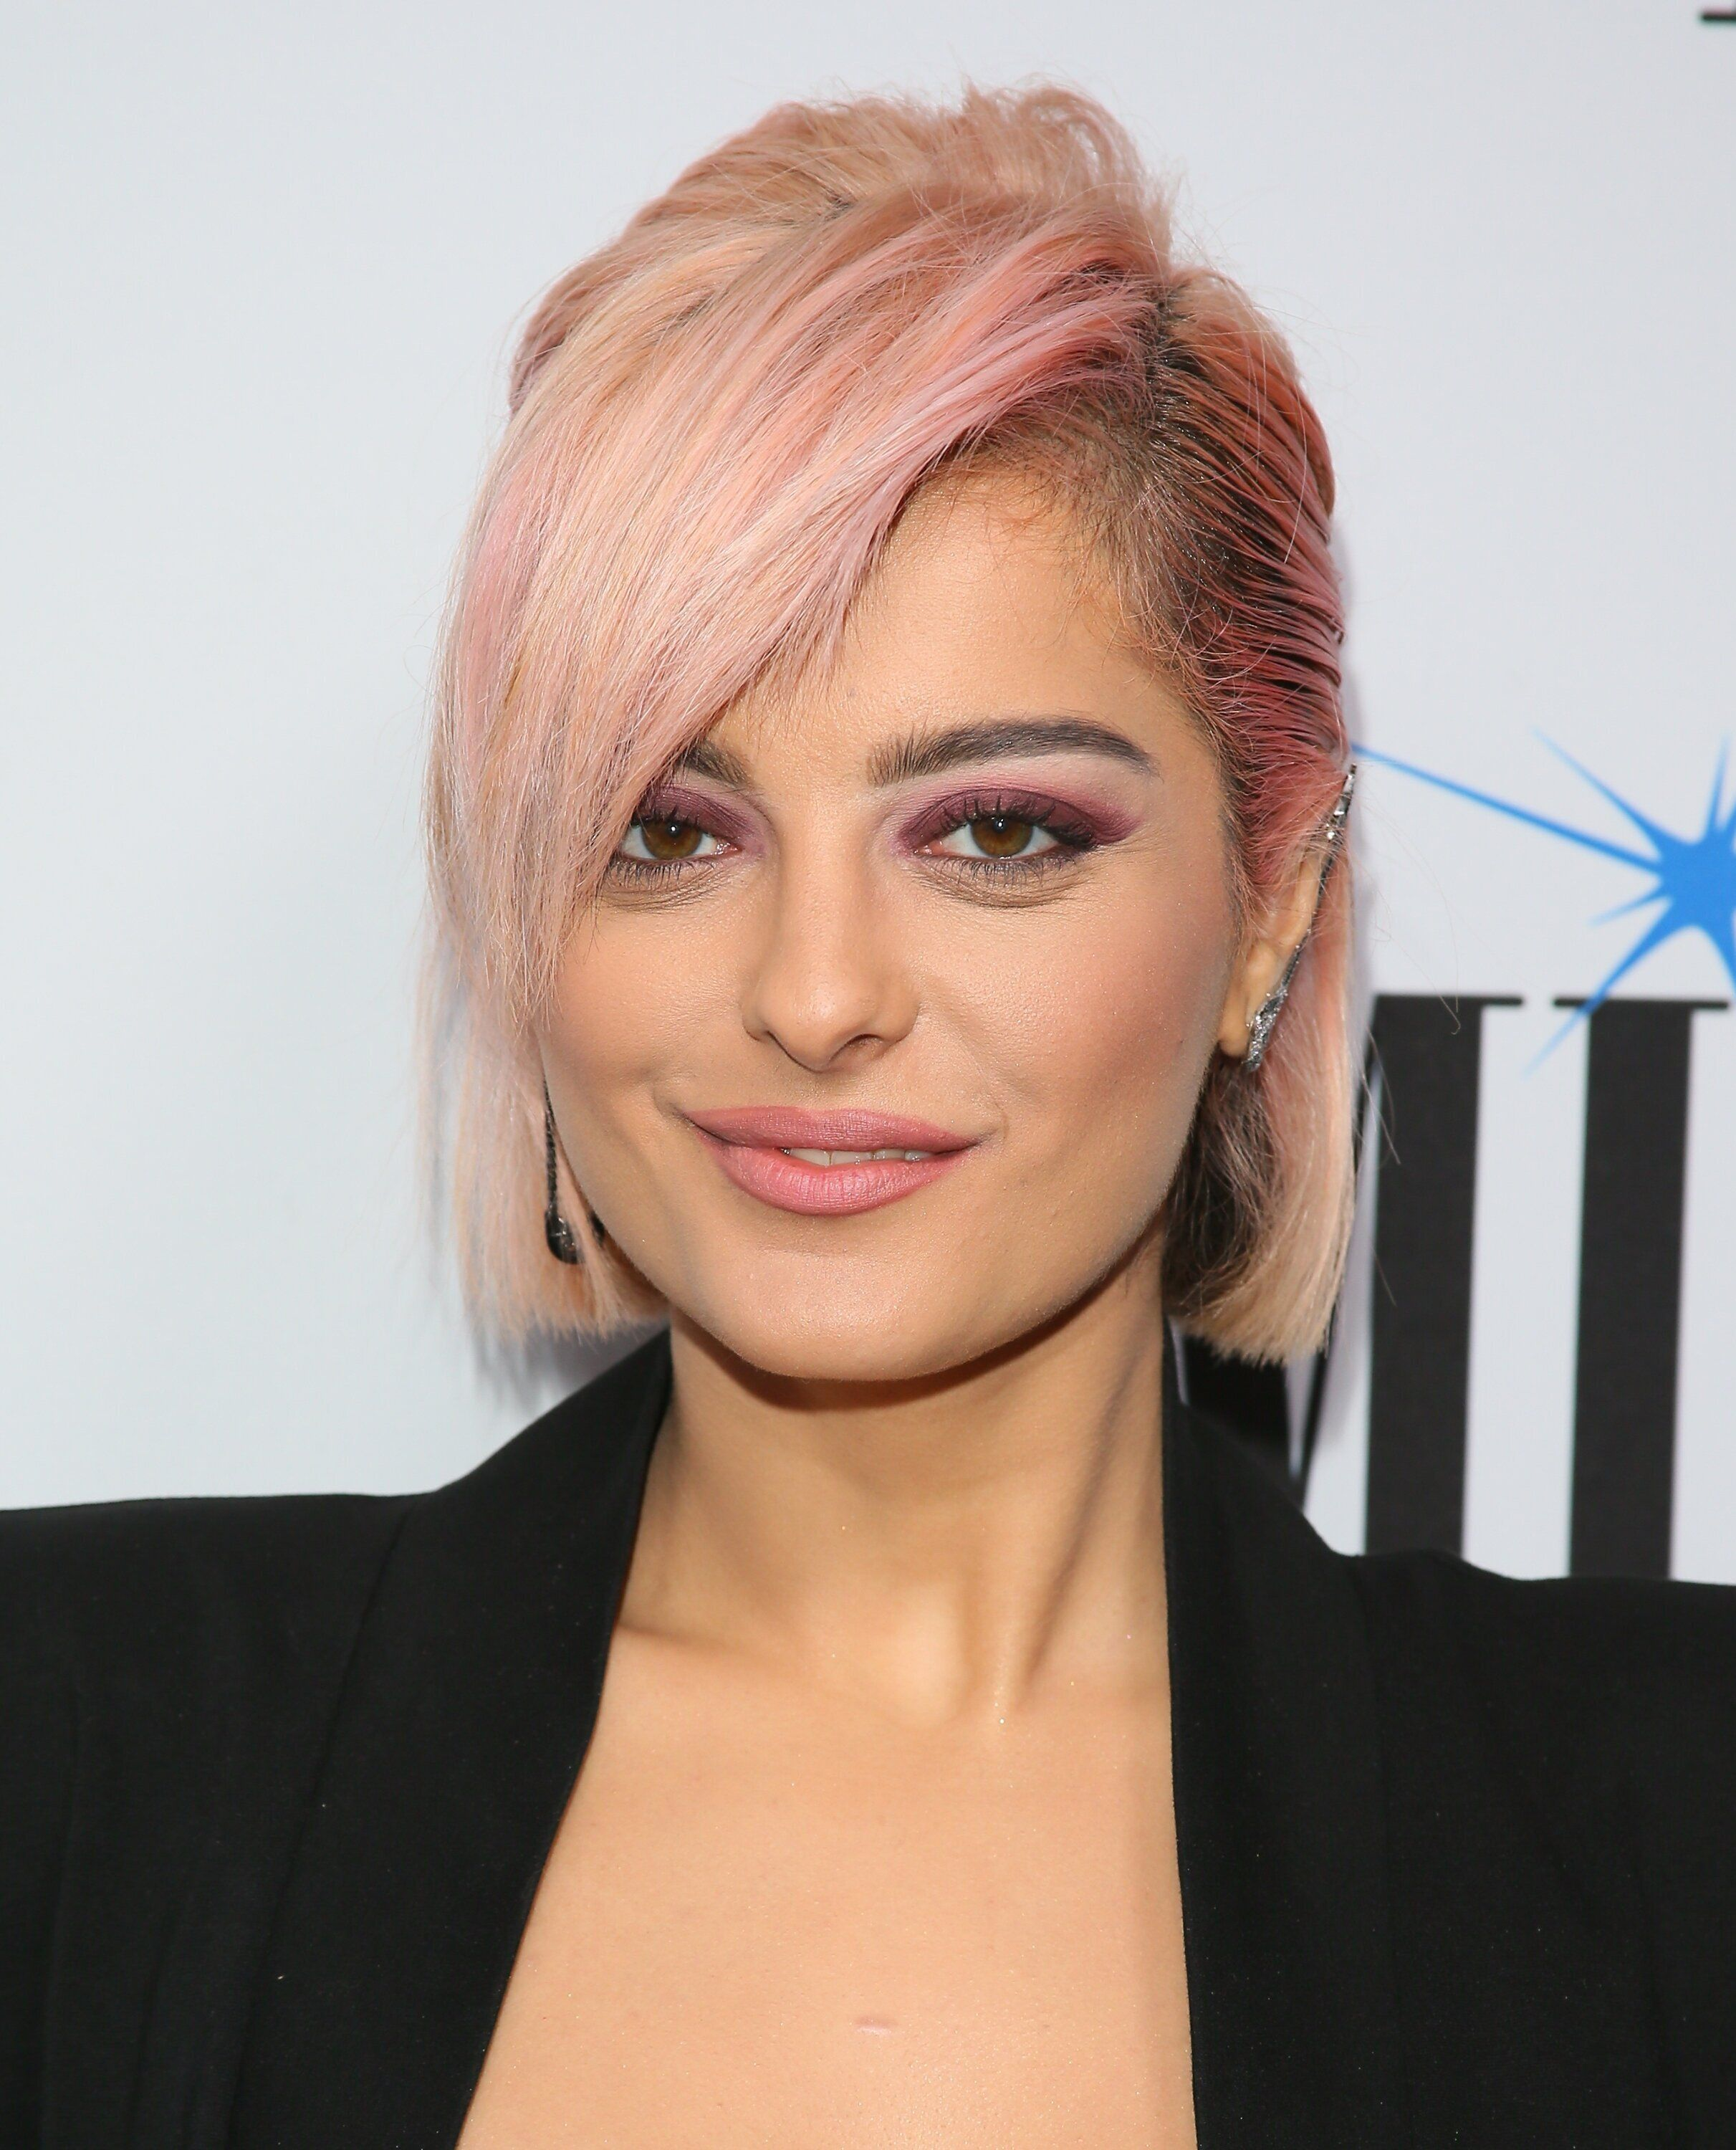 BEVERLY HILLS, CALIFORNIA - MAY 14:  Bebe Rexha attends the 67th Annual BMI Pop Awards at the Beverly Wilshire Four Seasons Hotel on May 14, 2019 in Beverly Hills, California. (Photo by Jean Baptiste Lacroix/WireImage)